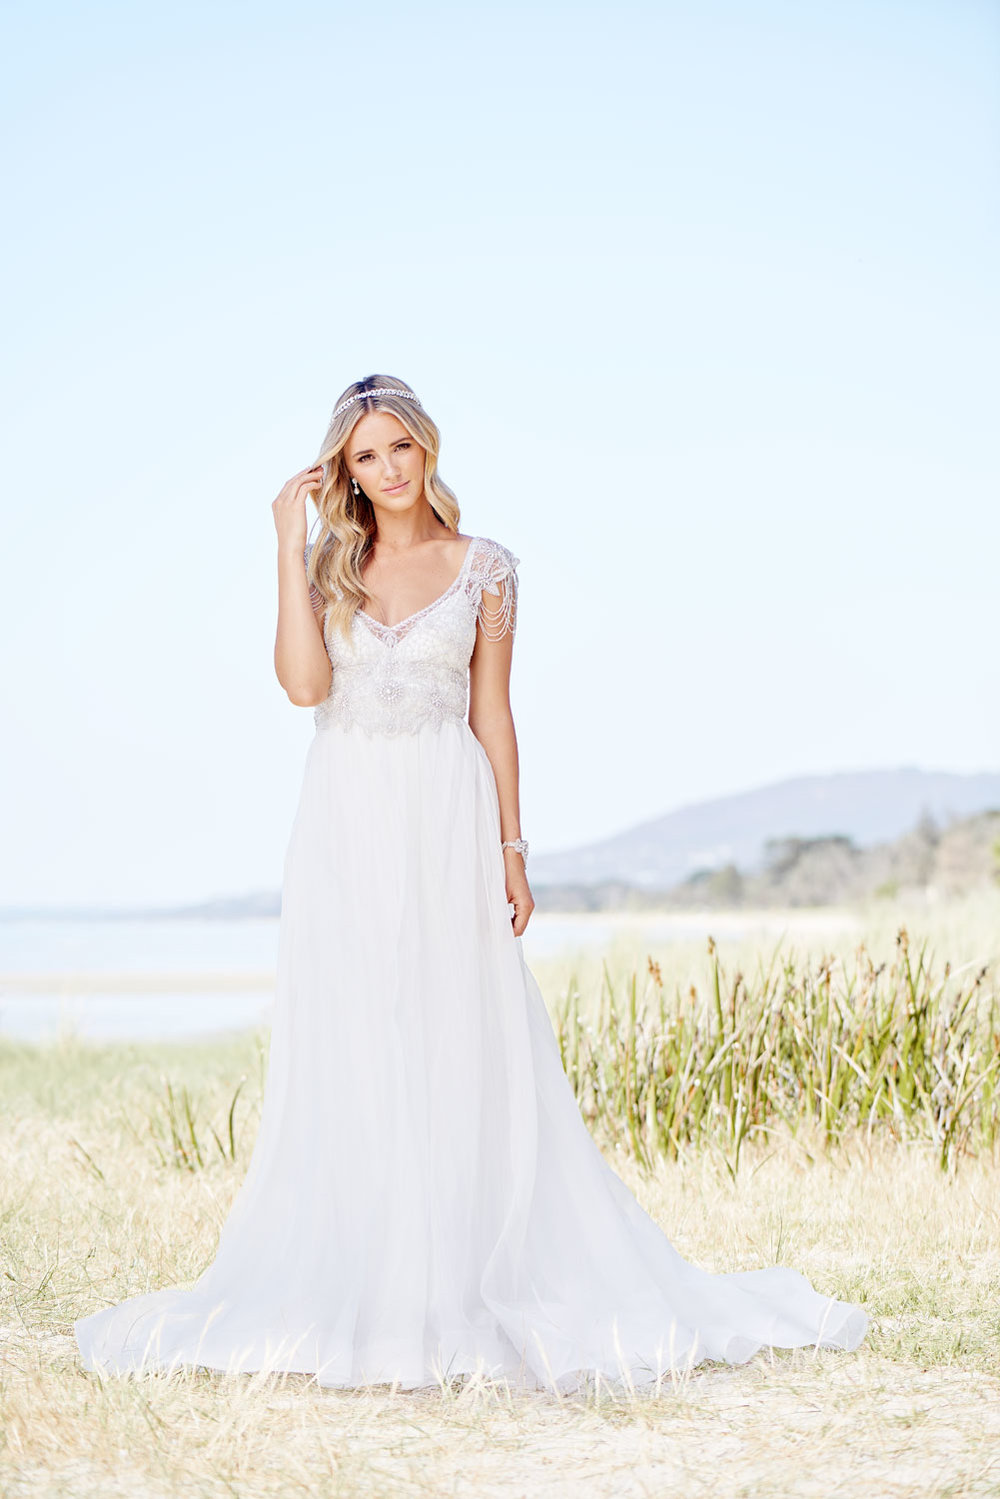 Anna Campbell Grace Dress | Vintage-inspired hand-embellished wedding dress